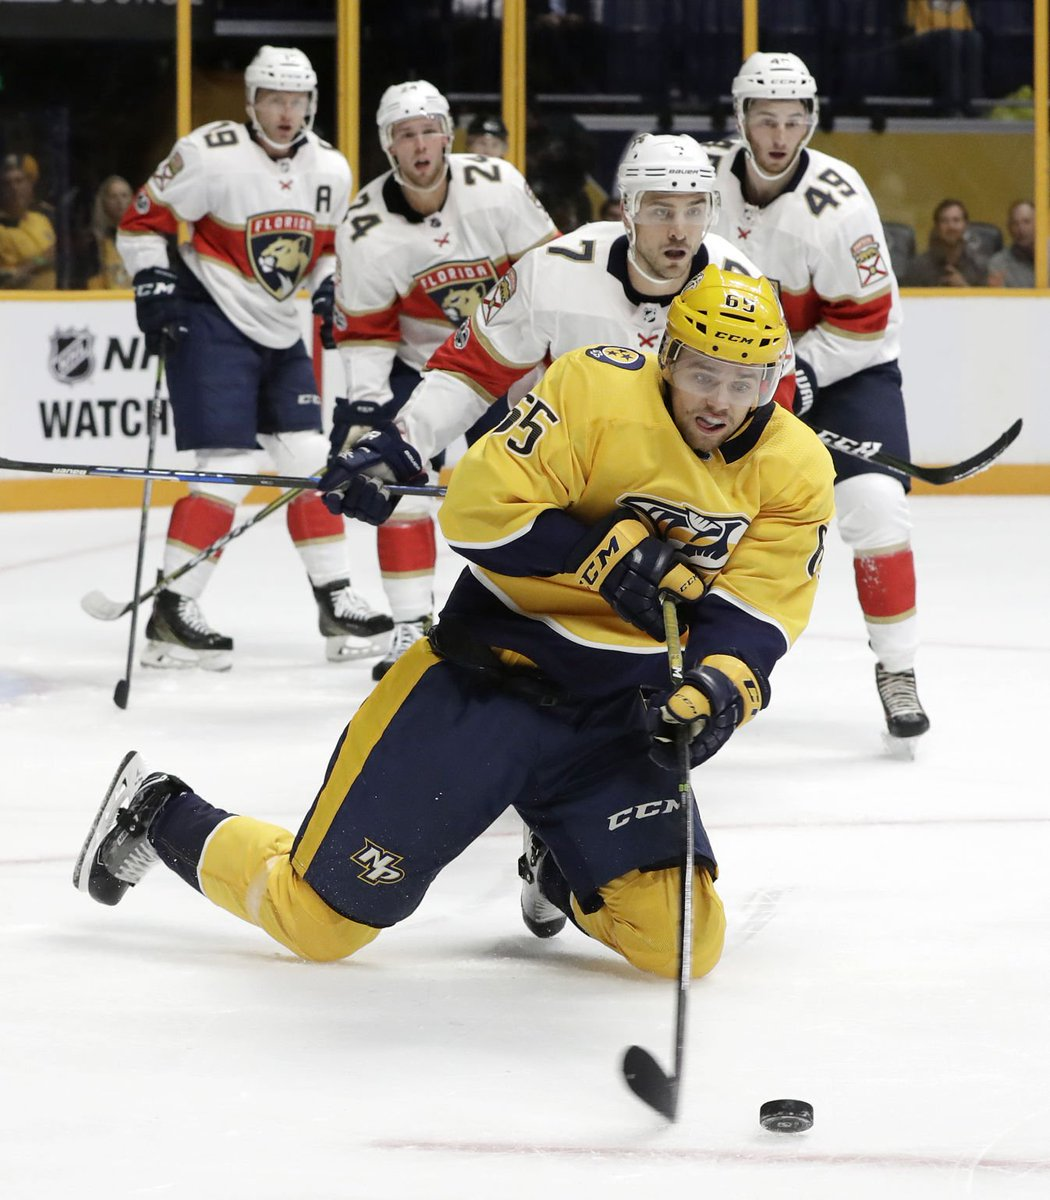 Coyotes deal two of Roadrunners' top players in trade that could transform Tucson's team https://t.co/jlojUXK1Ze